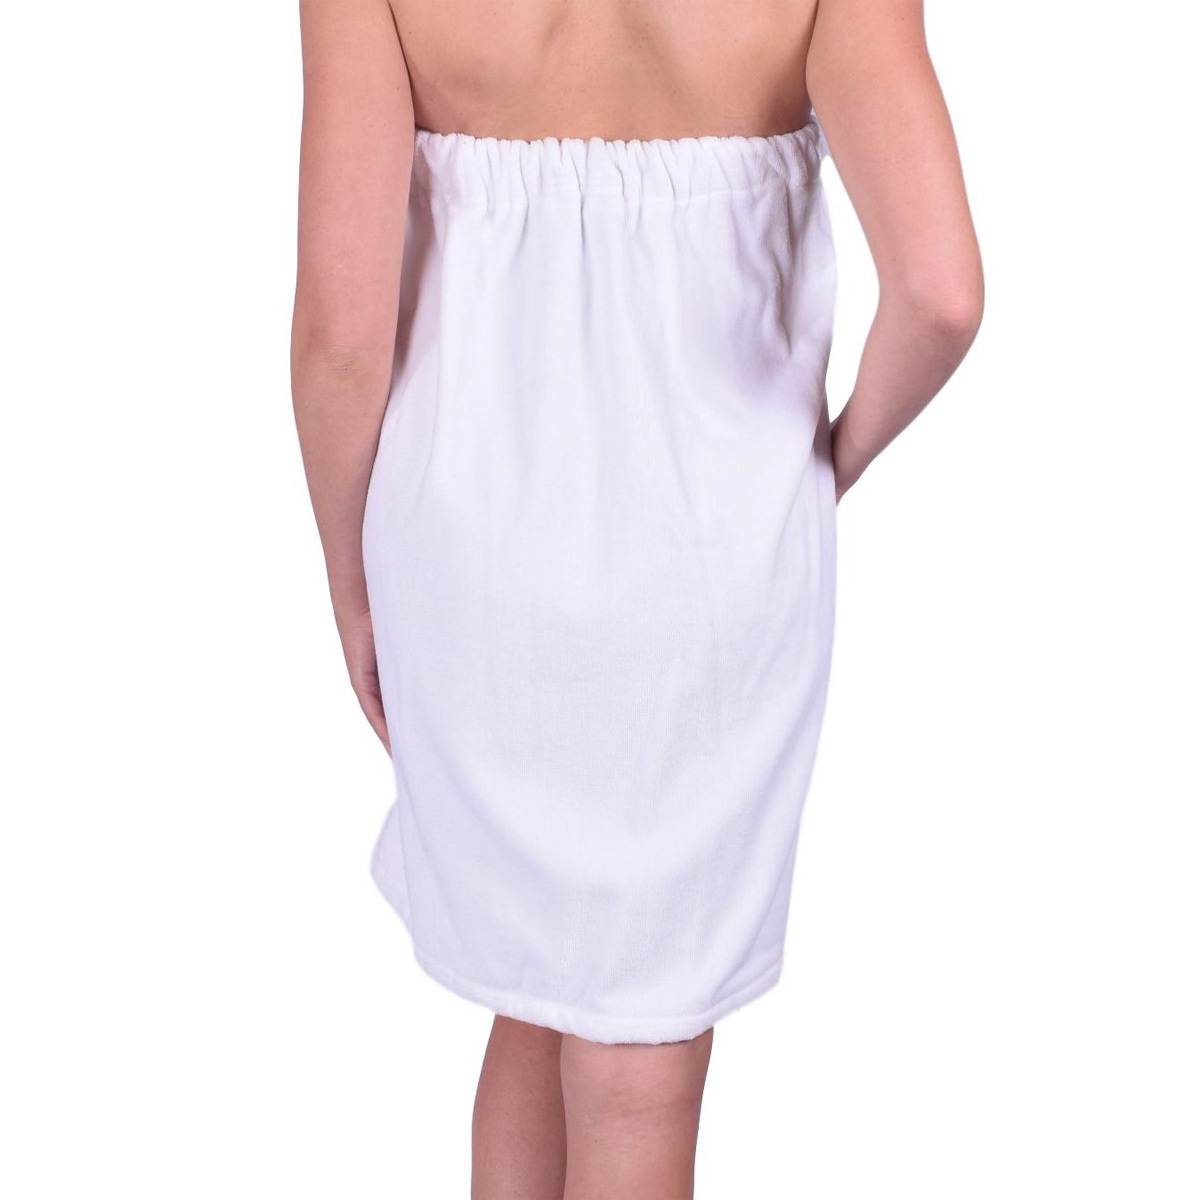 Womens Body Wrap Towel - 100% Cotton Adjustable Bath Cover Up - Made In Turkey